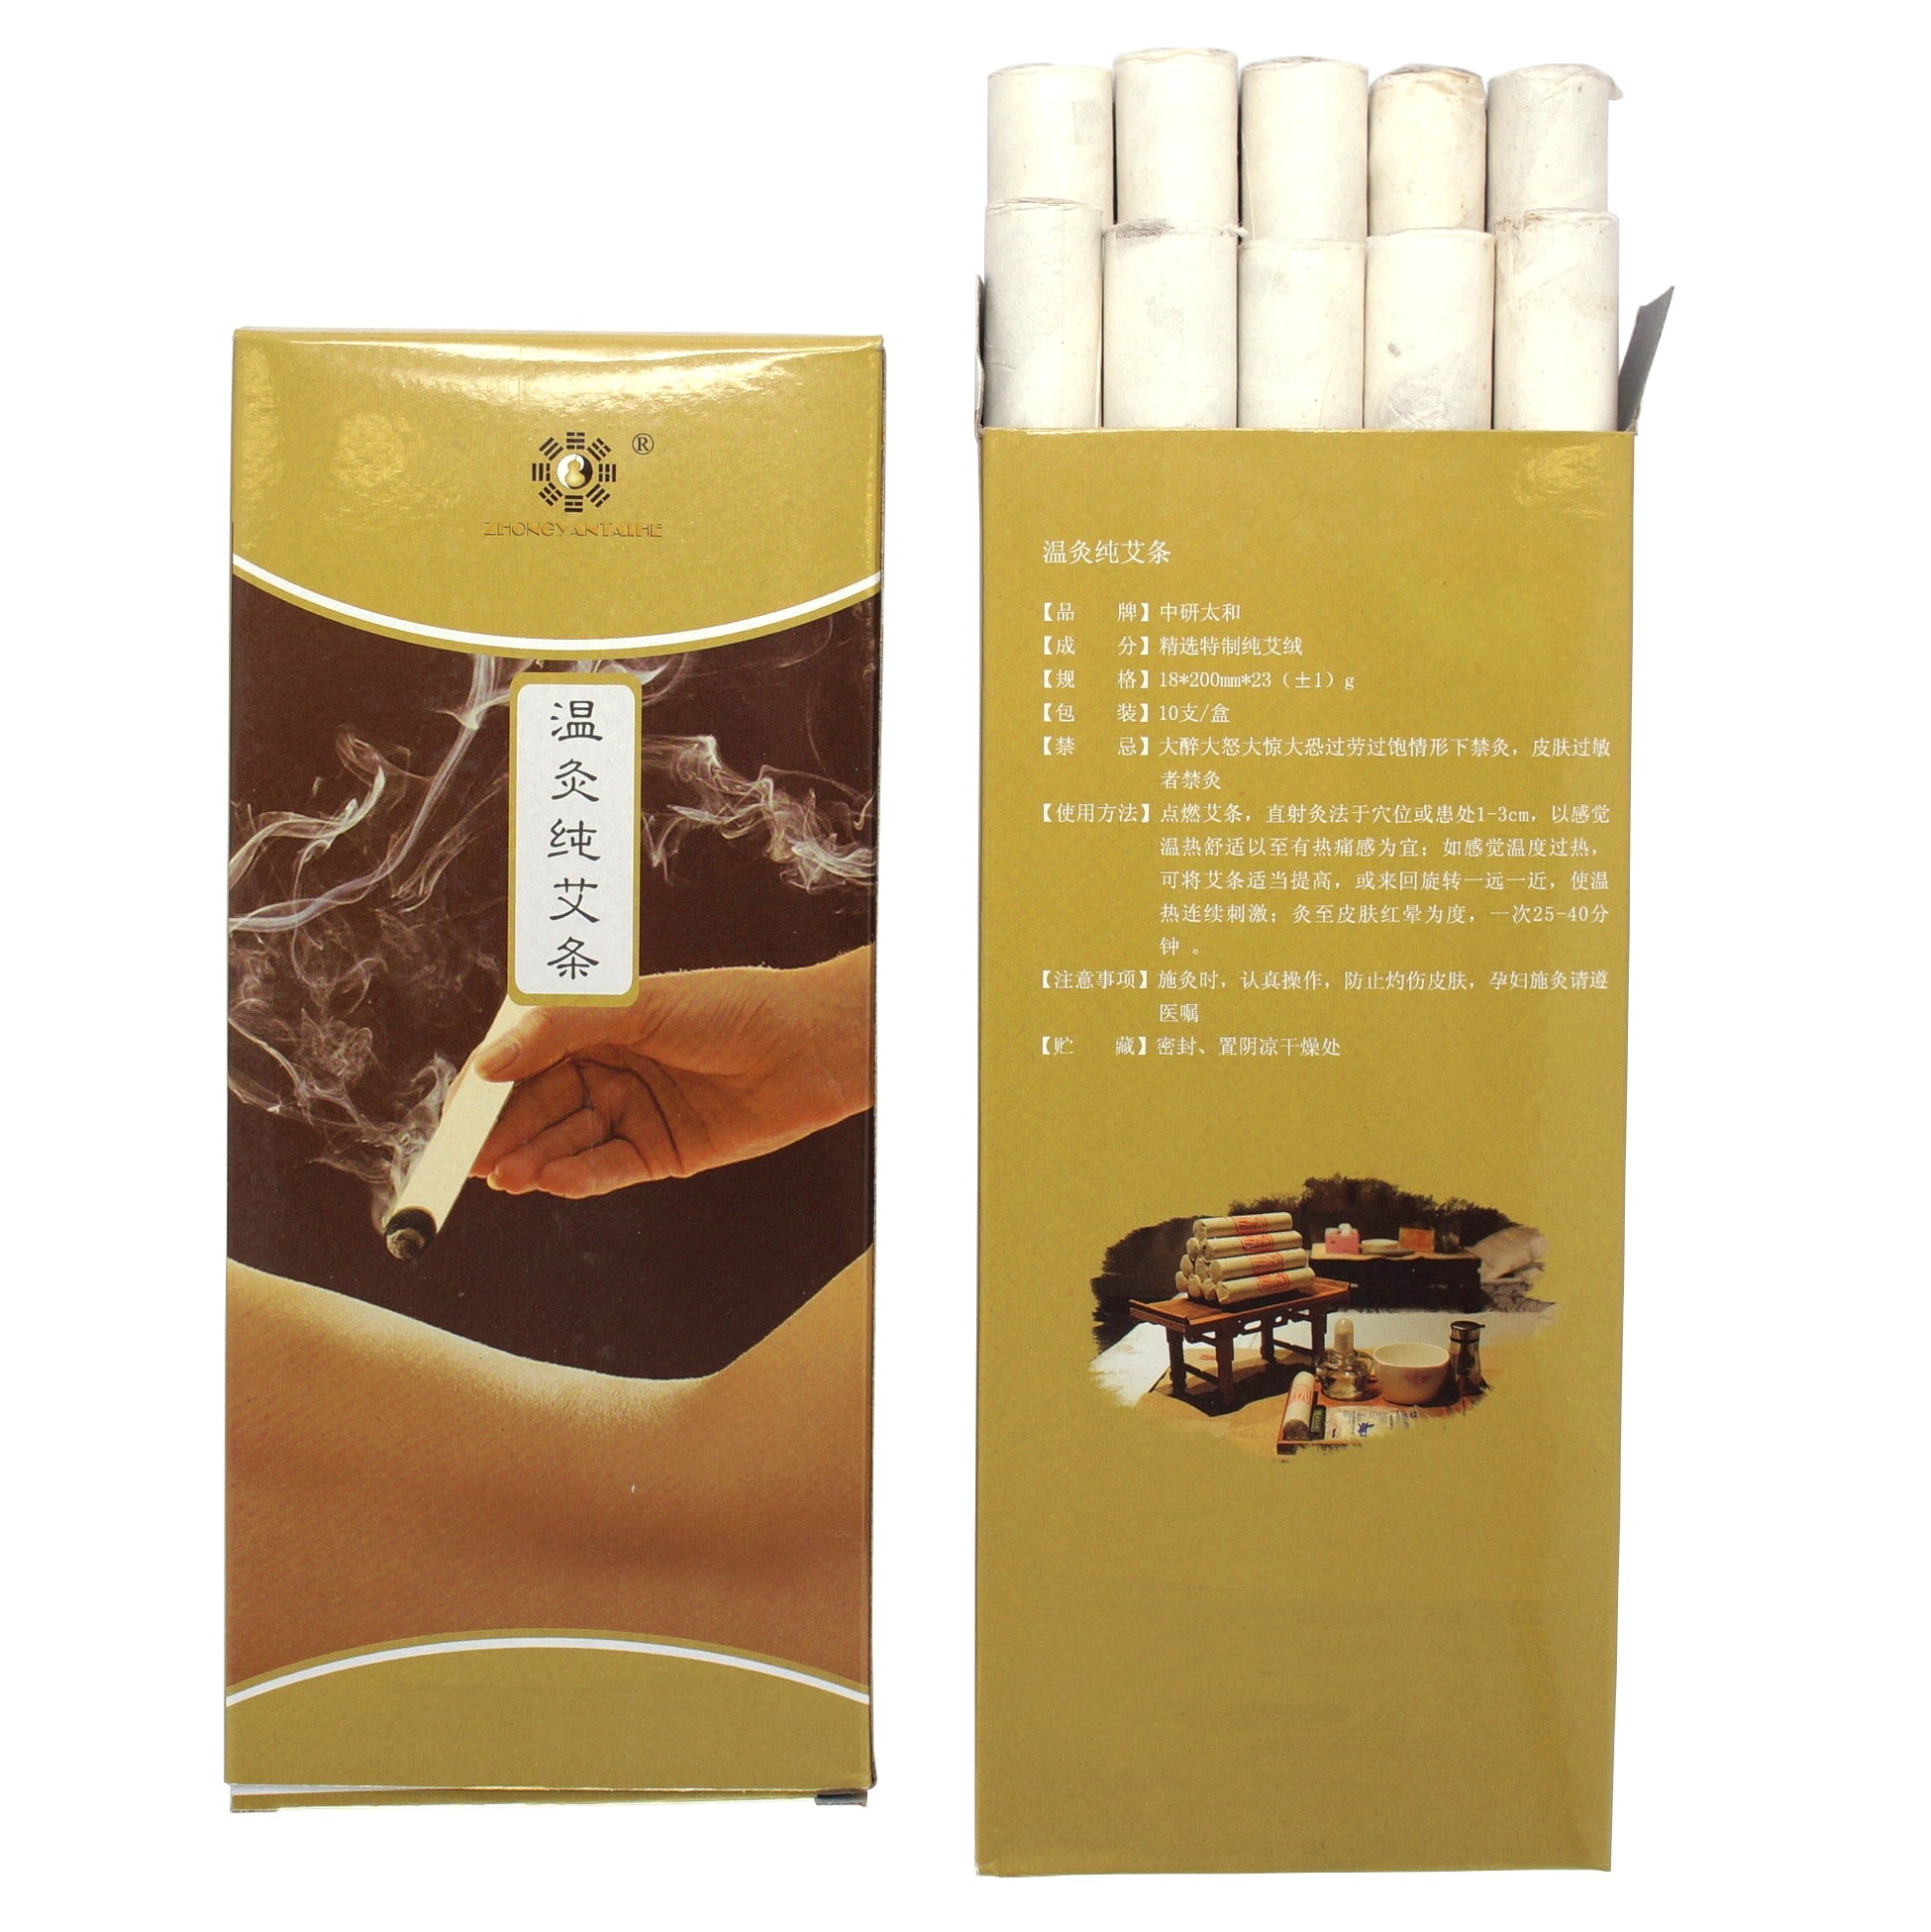 CyberTech Pure Moxa Rolls for Mild Moxibustion